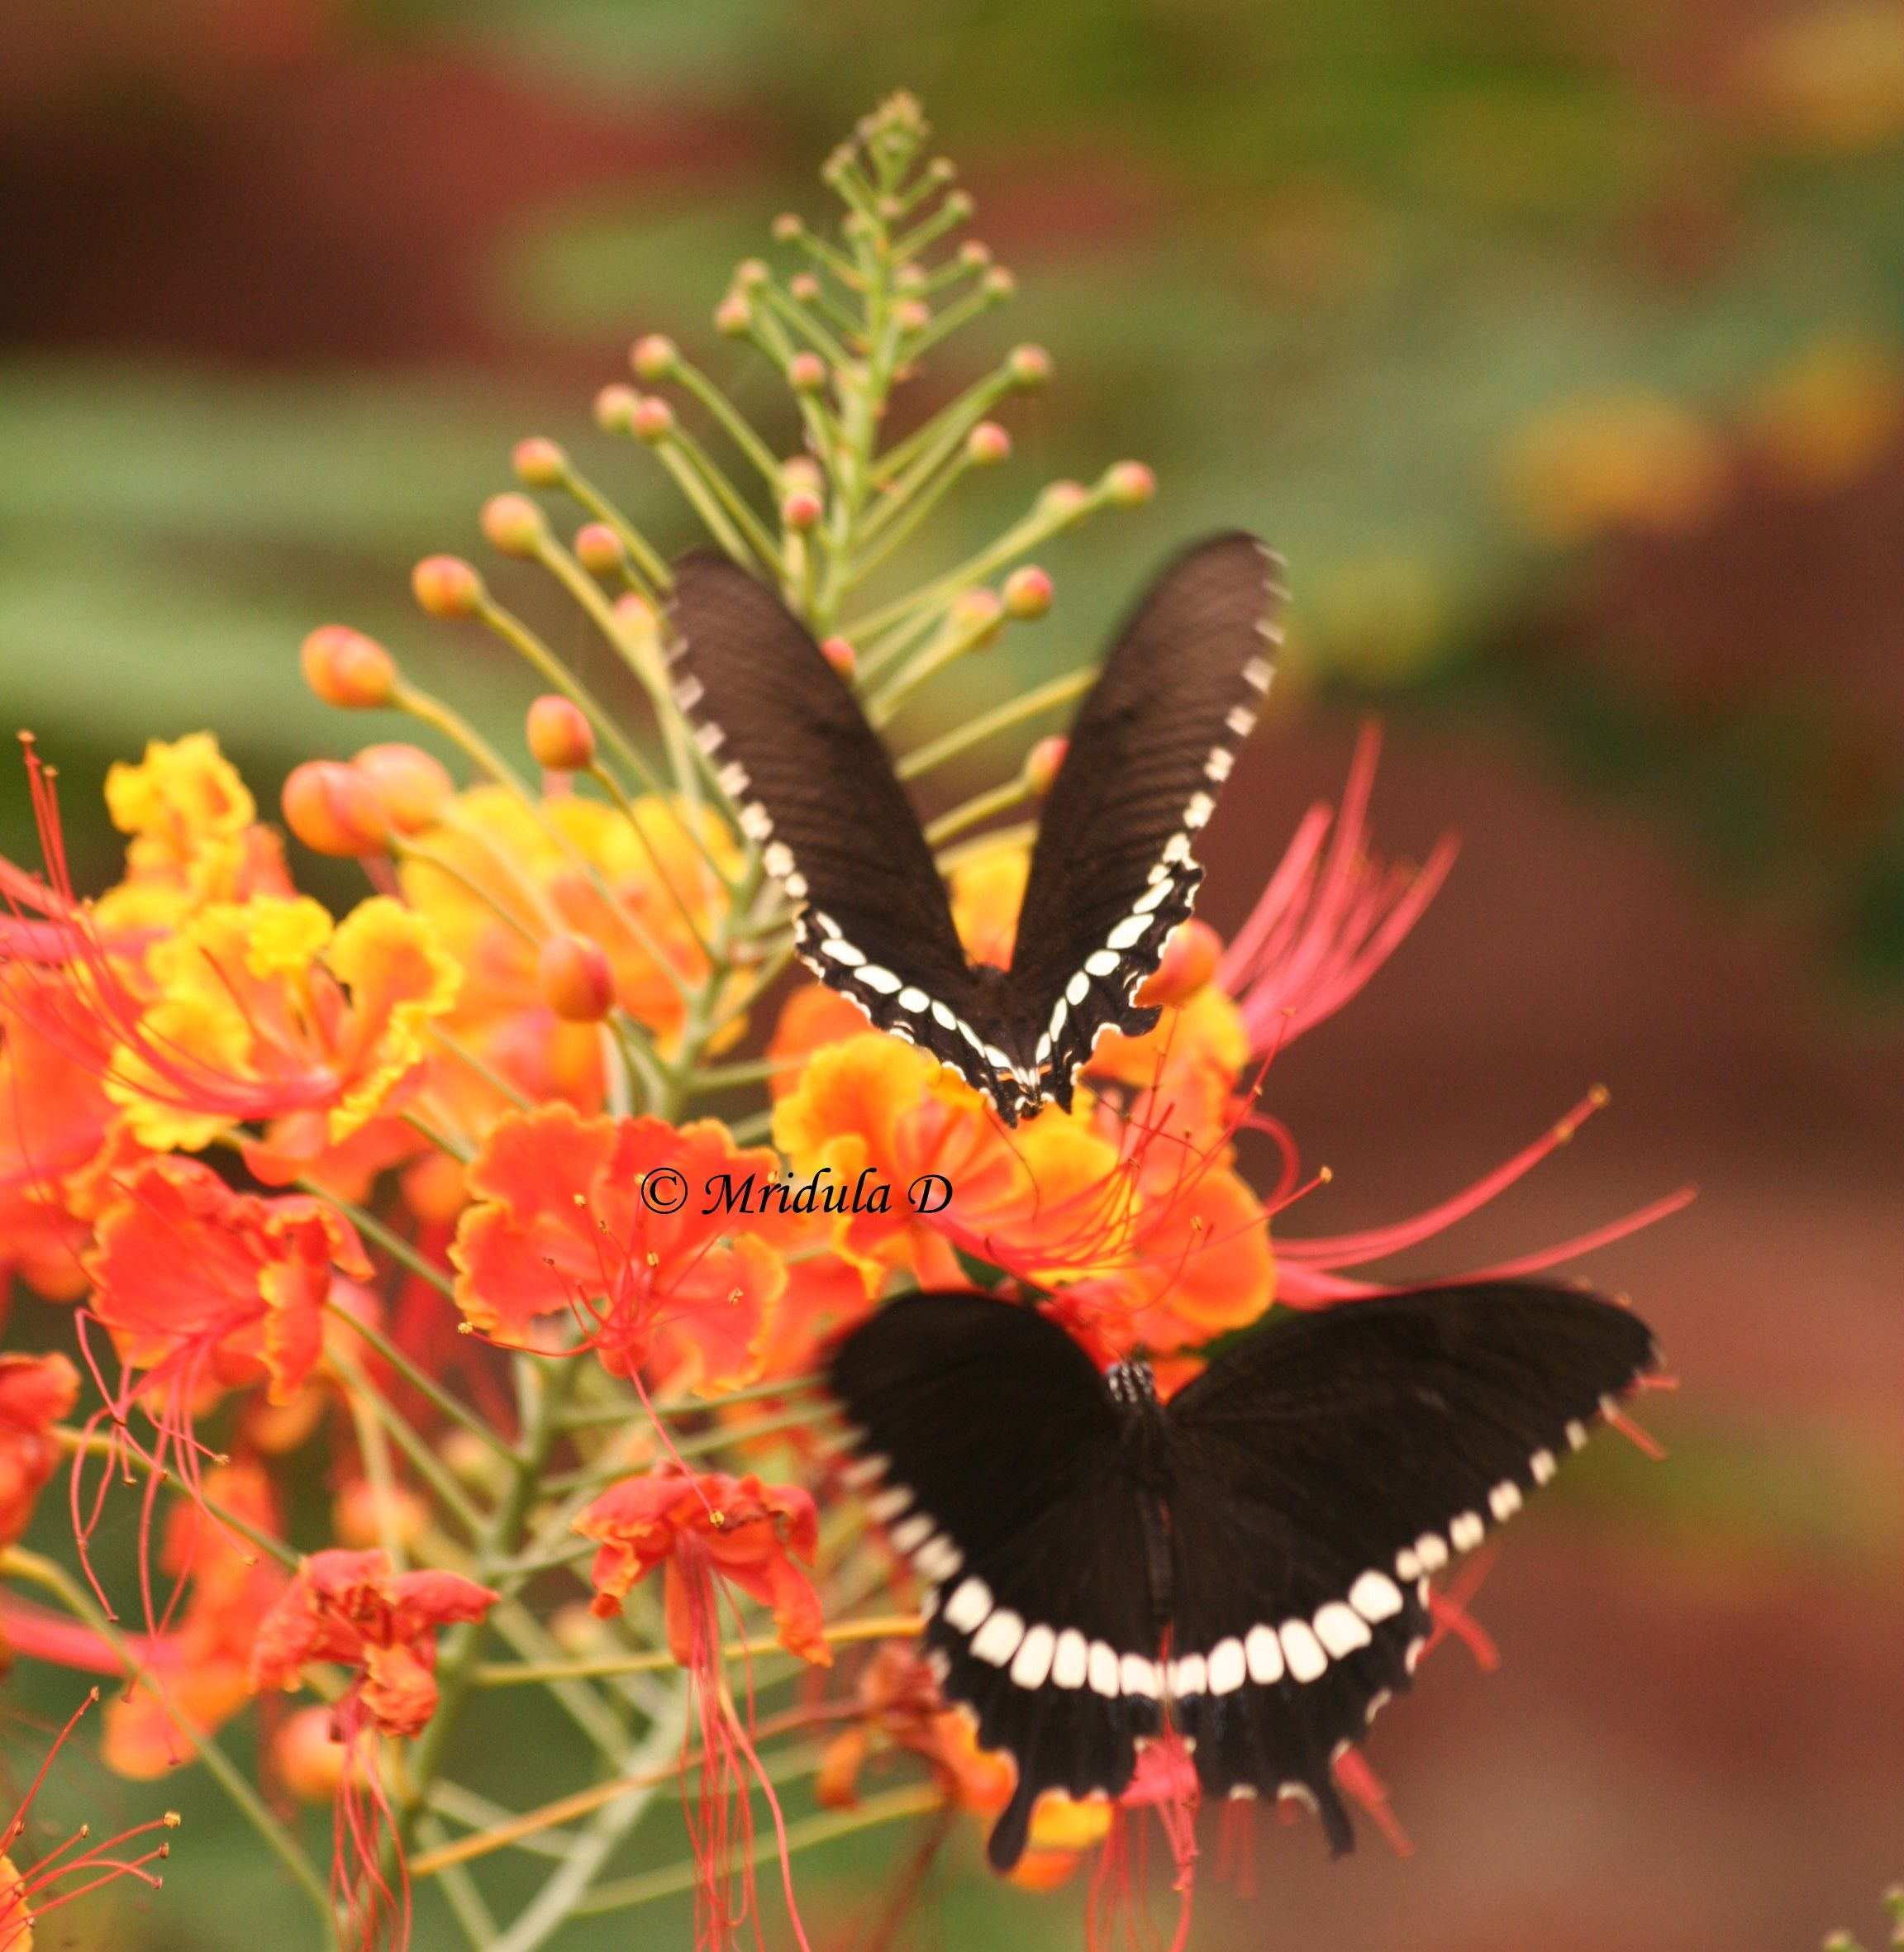 pictures of butterflies | ... - OK, I am Showing off my Butterflies with the Peacock Flowerss